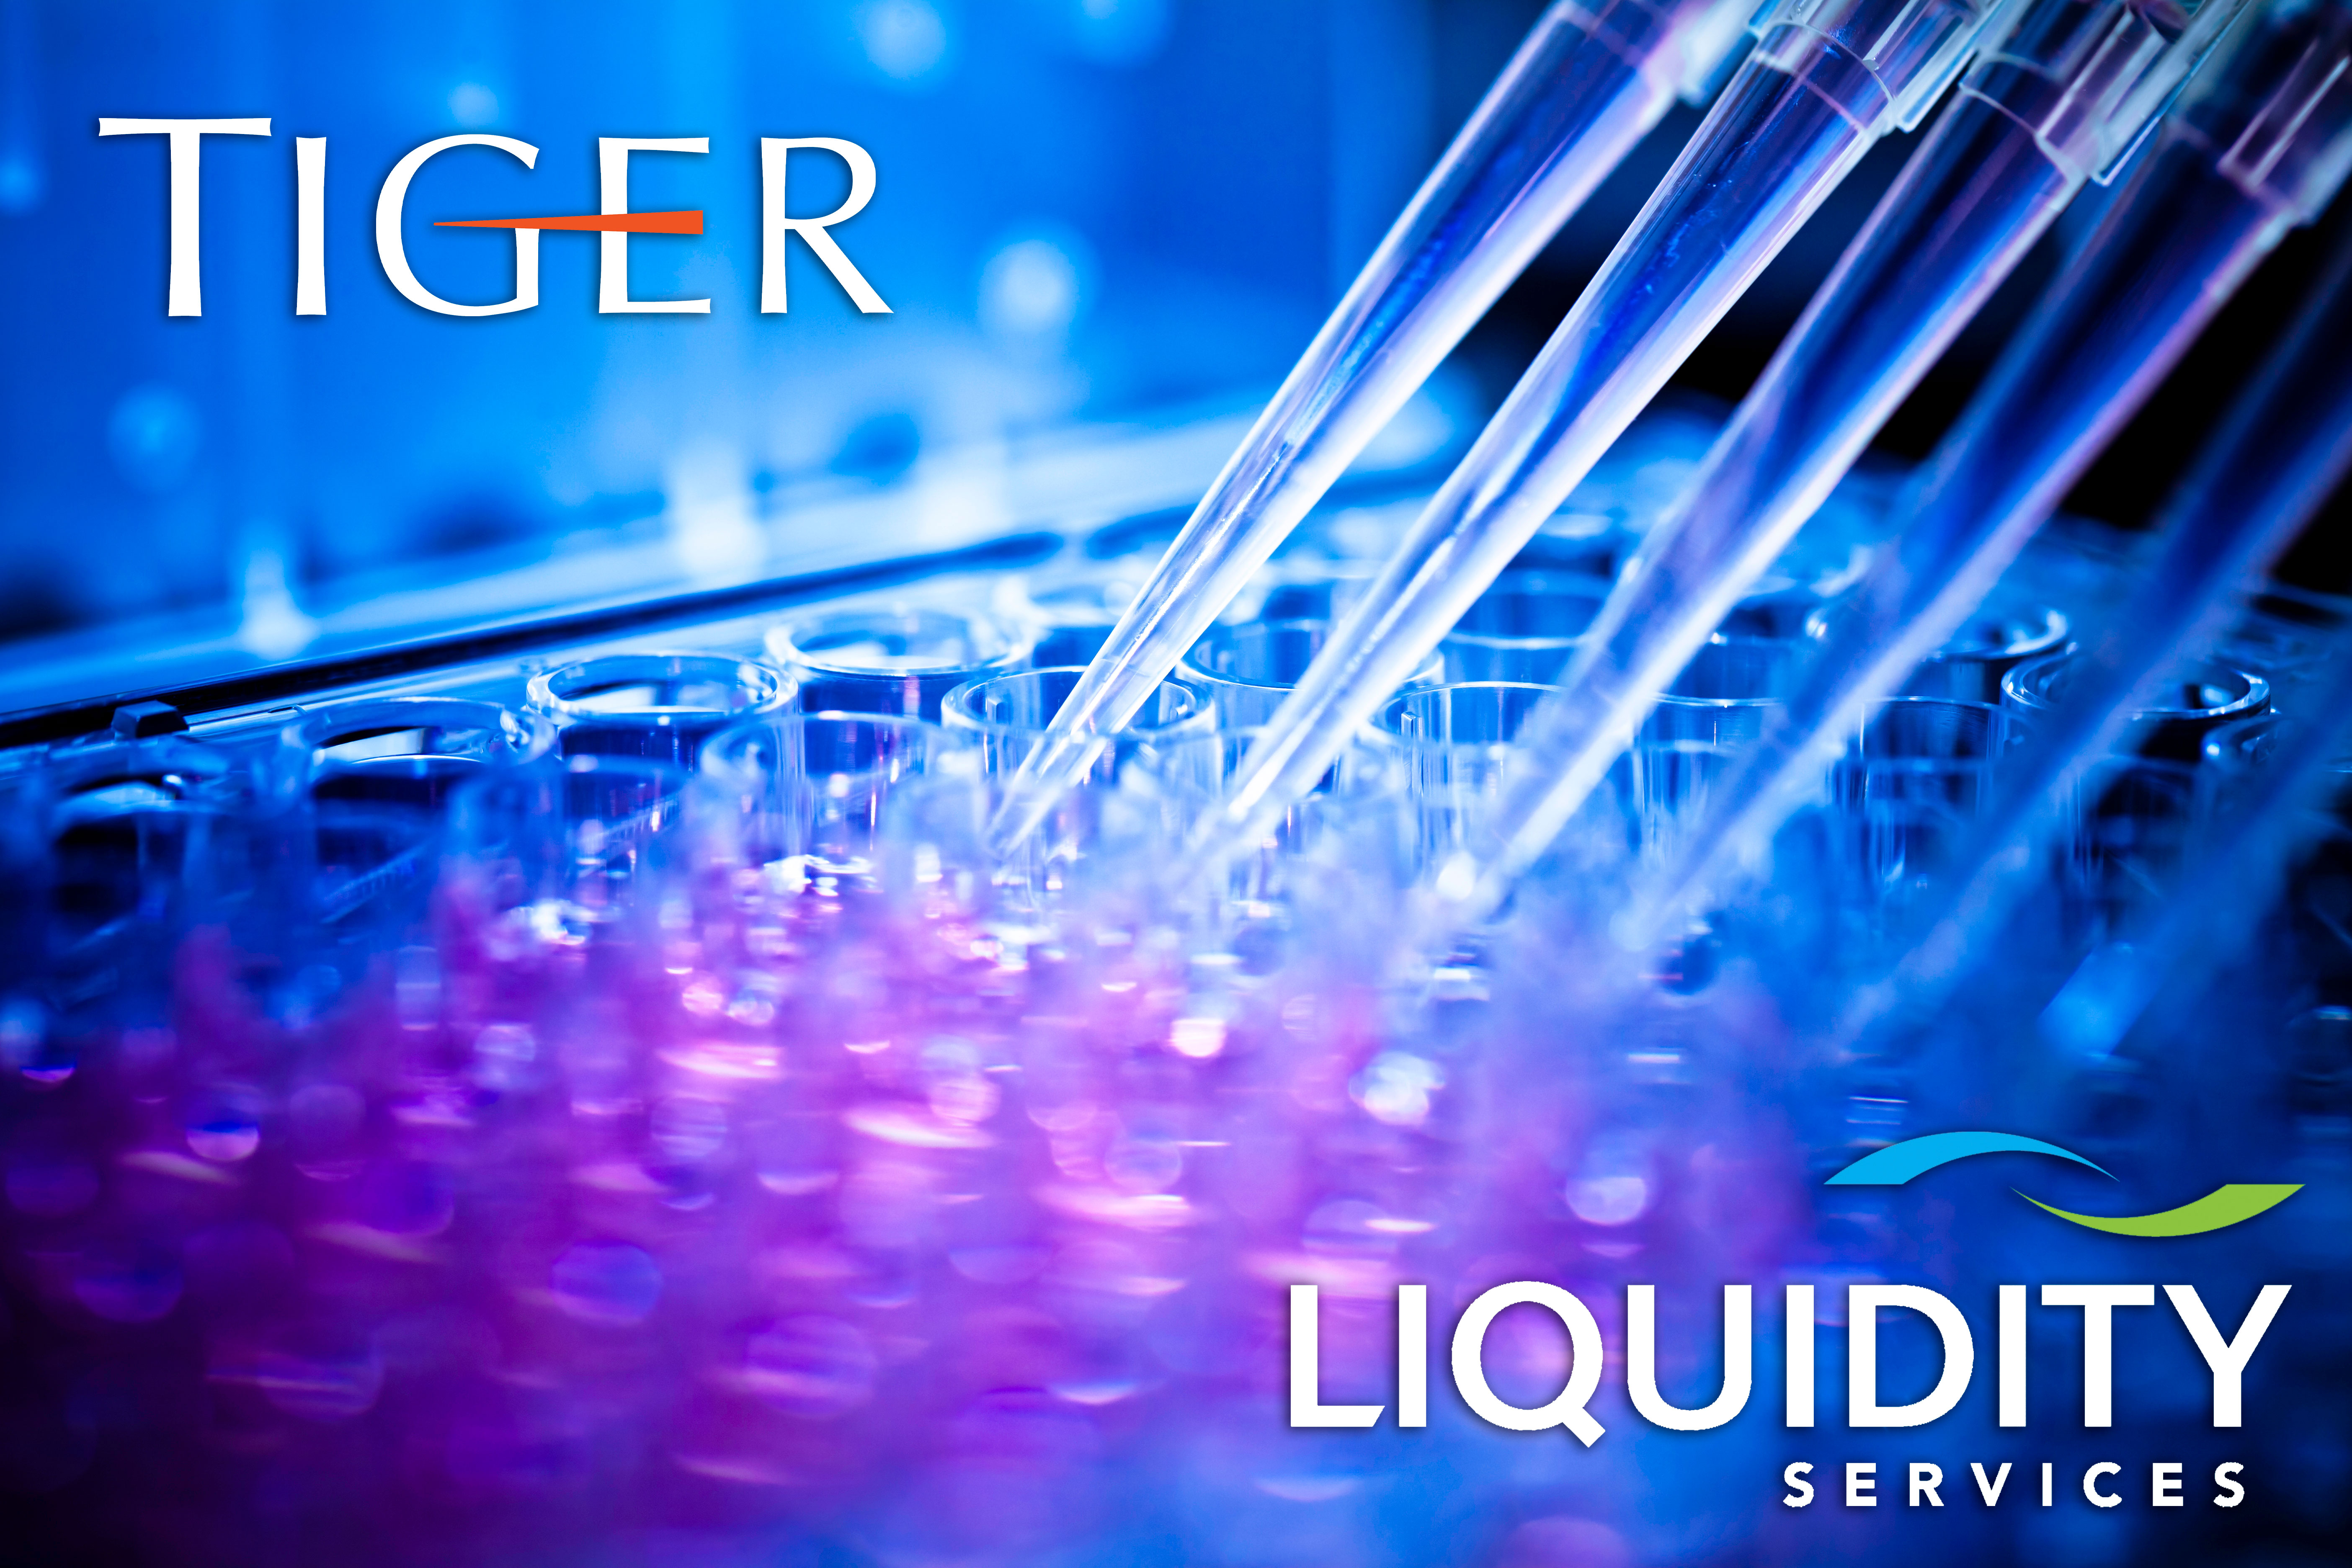 Tiger Group, Liquidity Services Partner to Focus on Distressed Assets in Biopharma